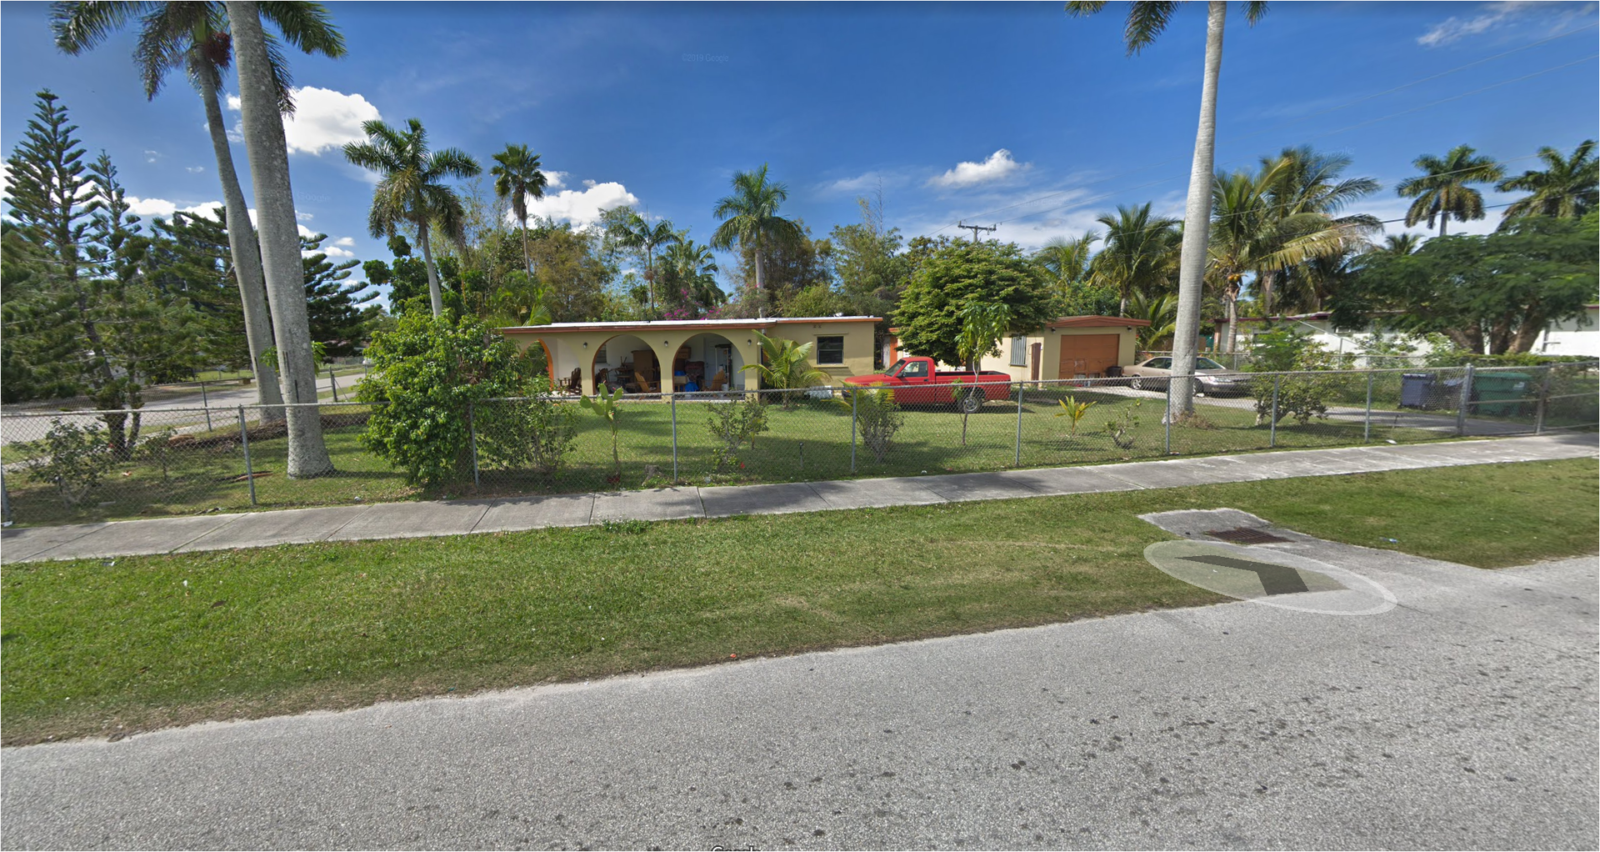 15251 Harding Lane, Homestead, FL 33033